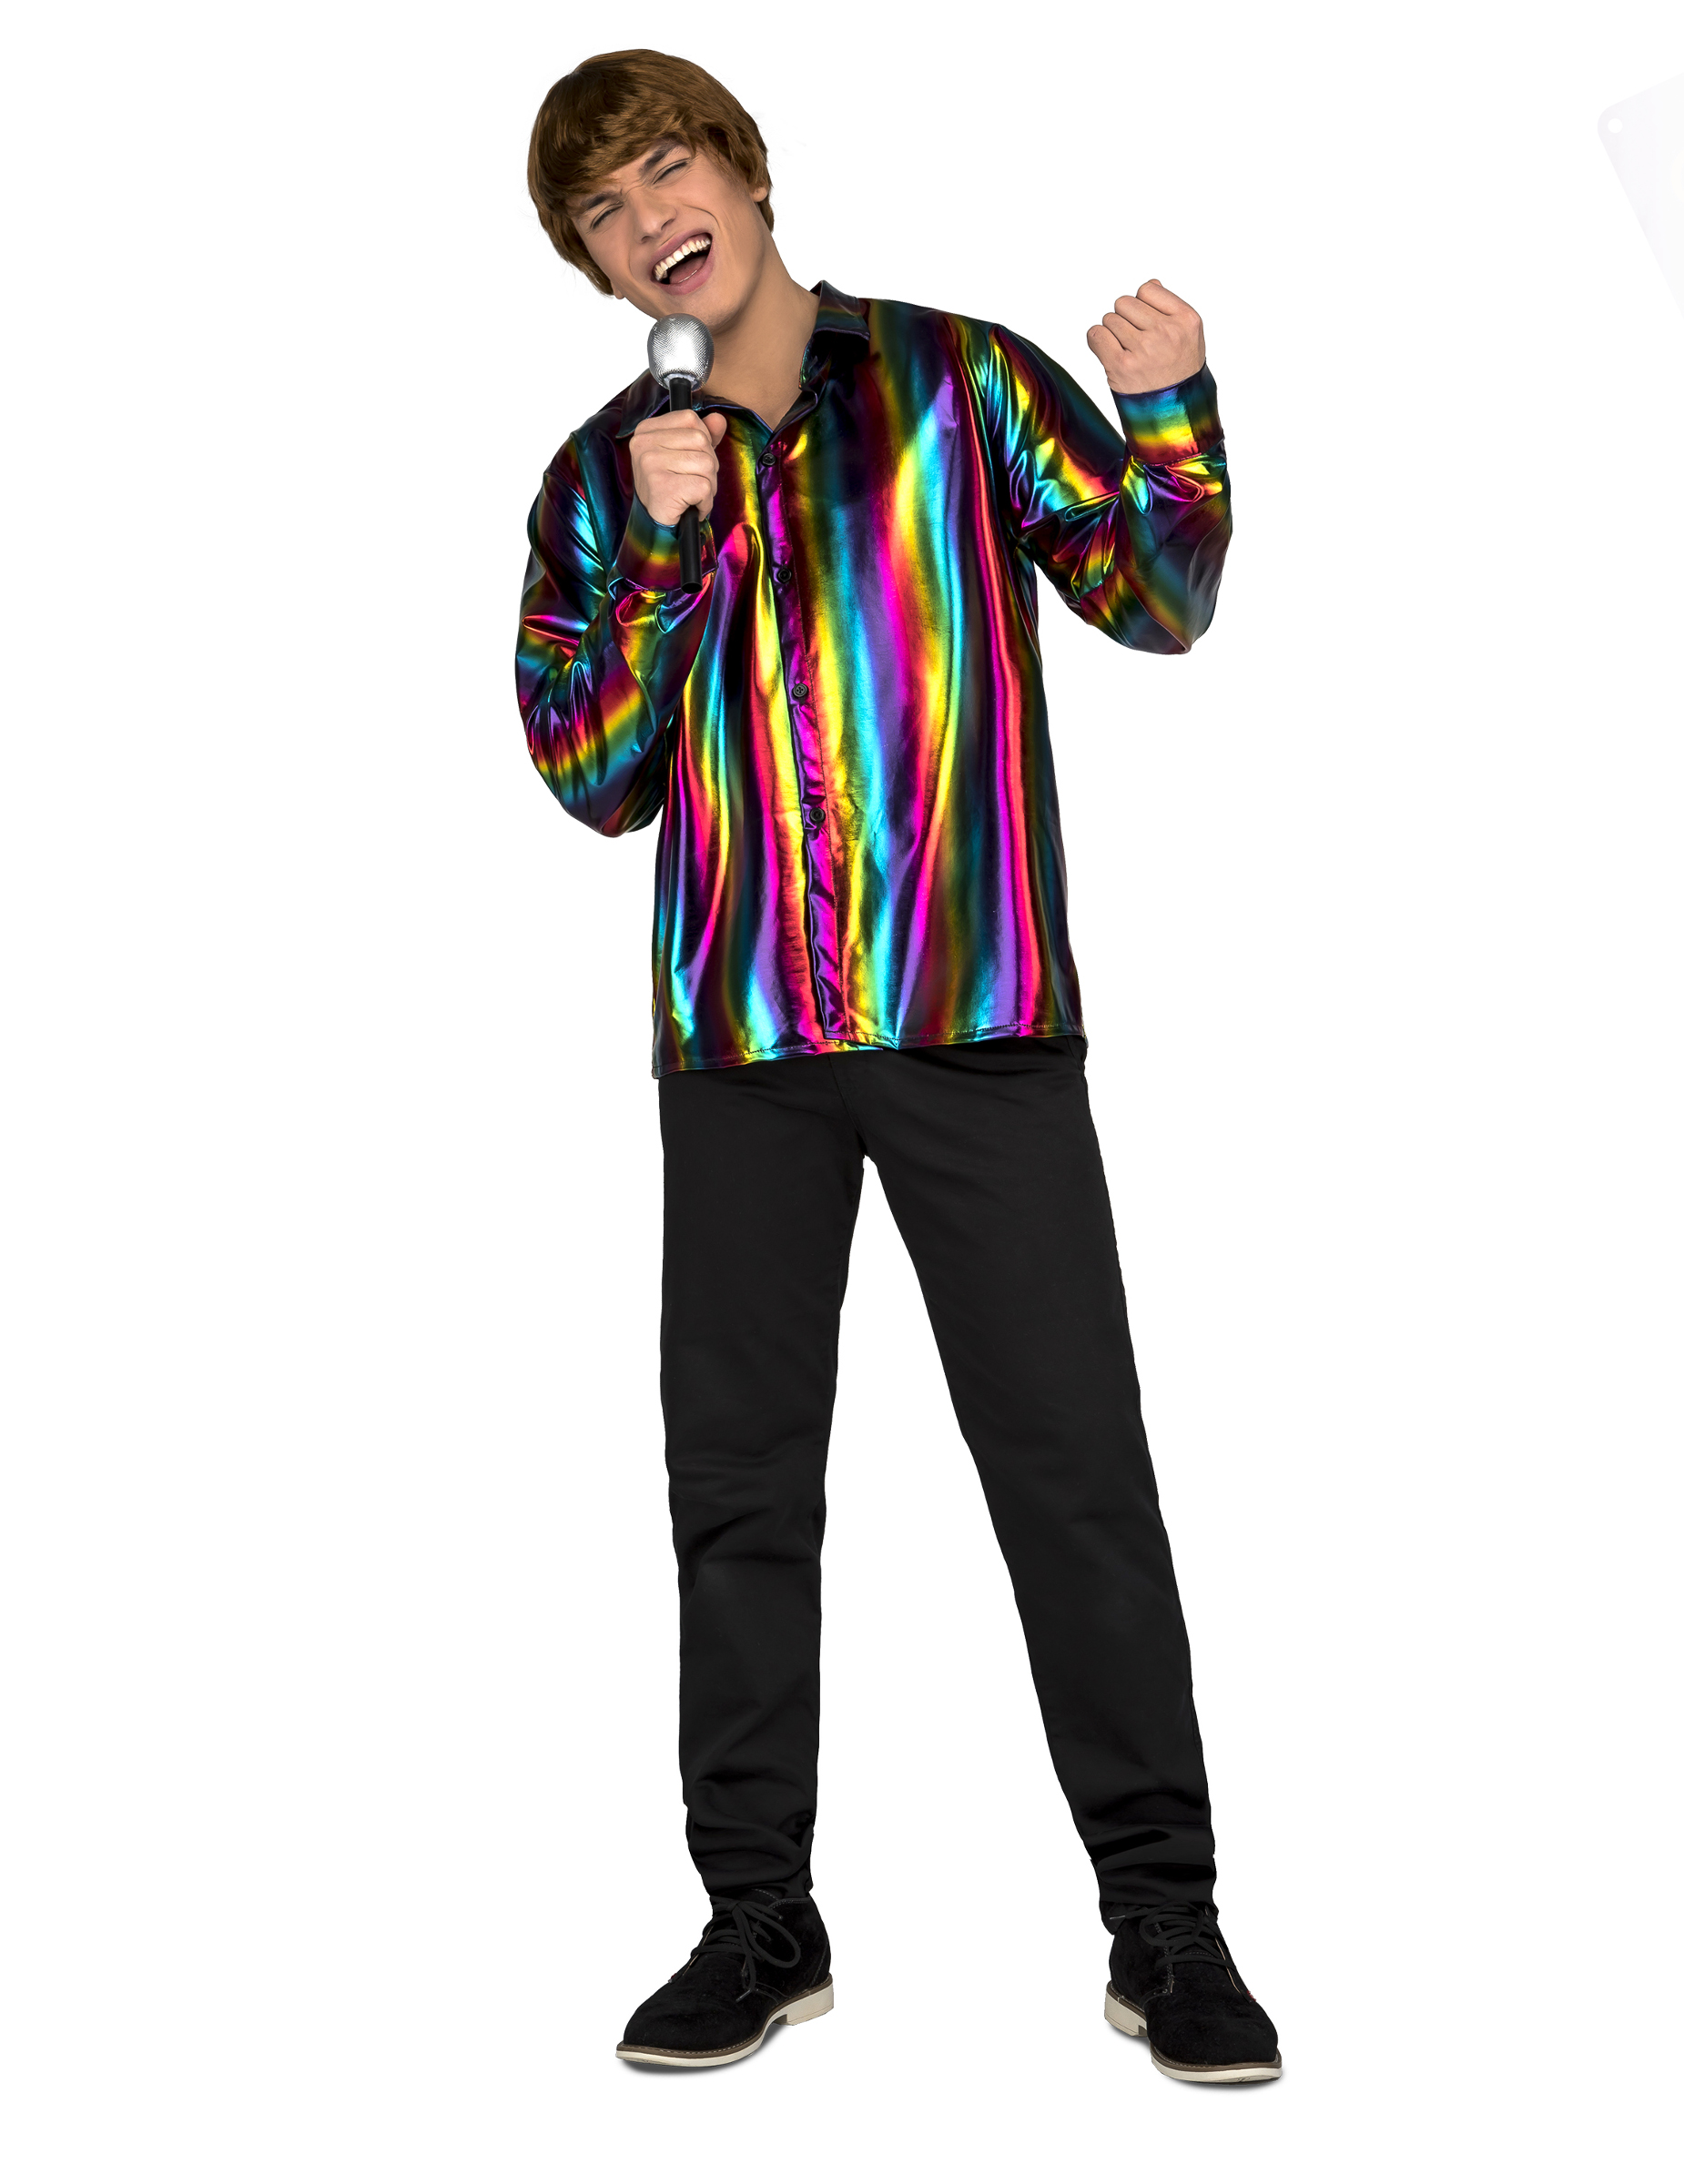 Party-Hemd Disco-Outfit für Fasching bunt - M / L 301219